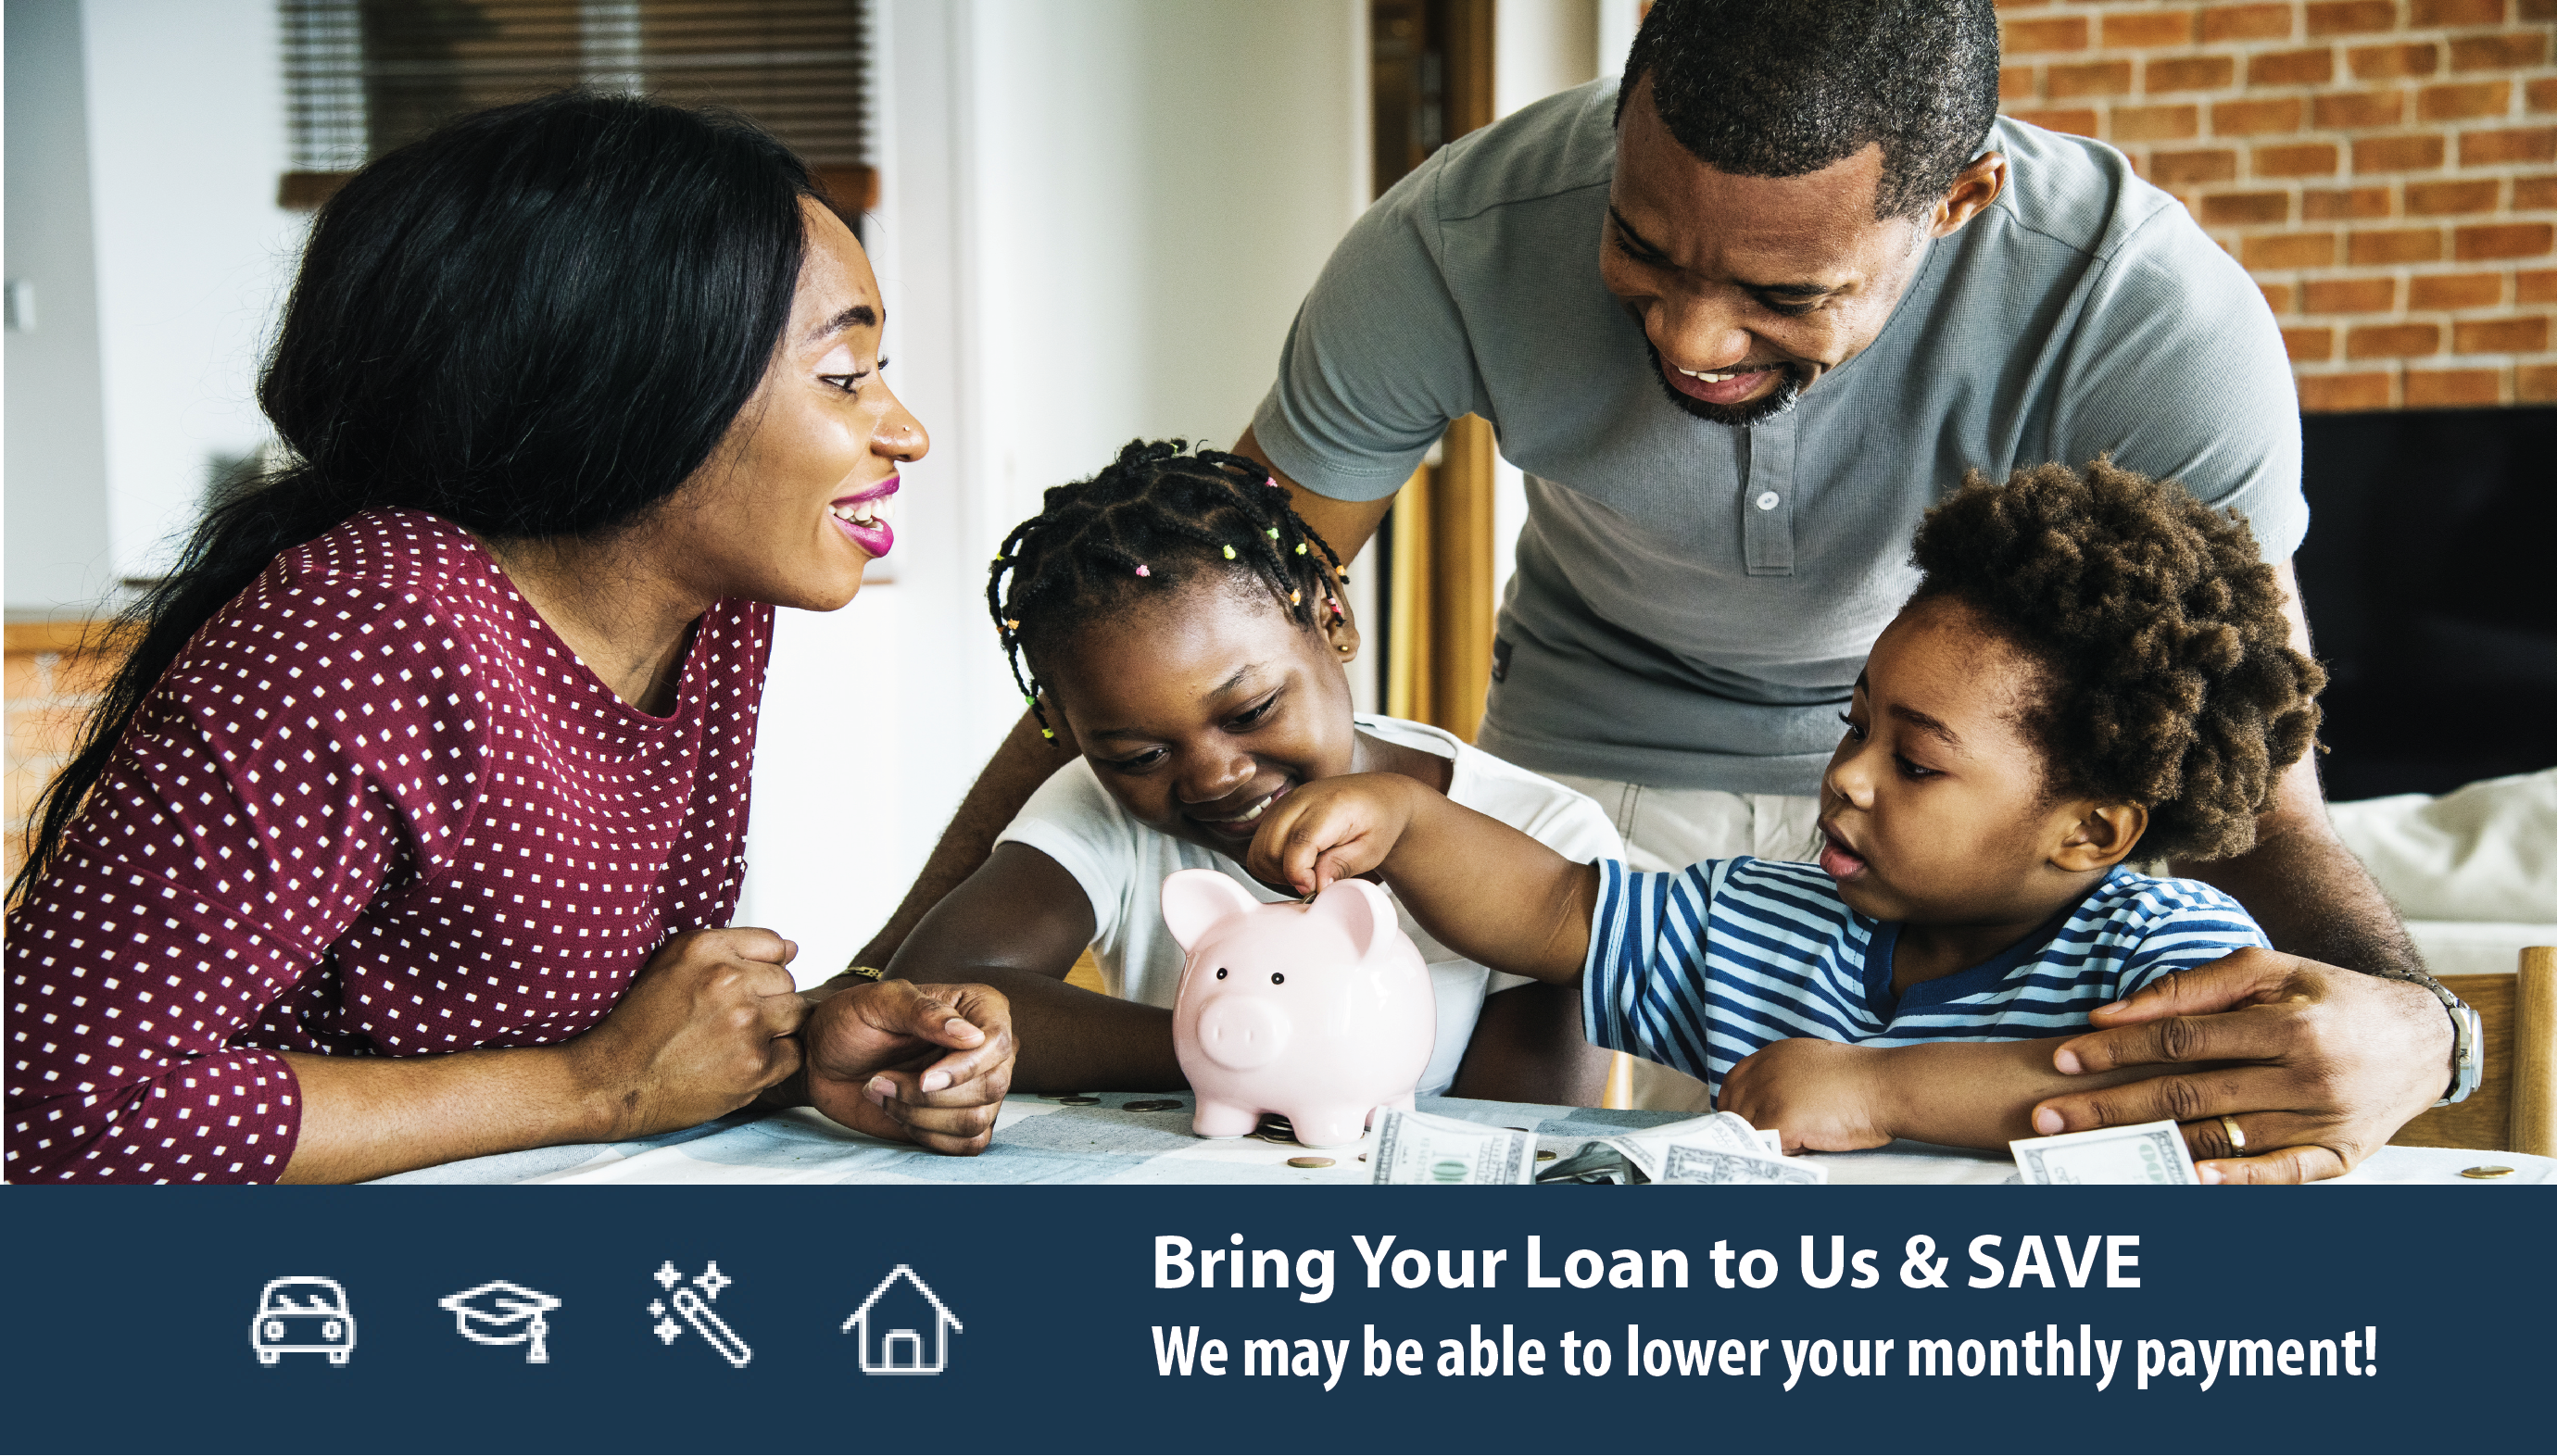 Bring your loan to Century Heritage, we may be able to reduce your monthly payment!